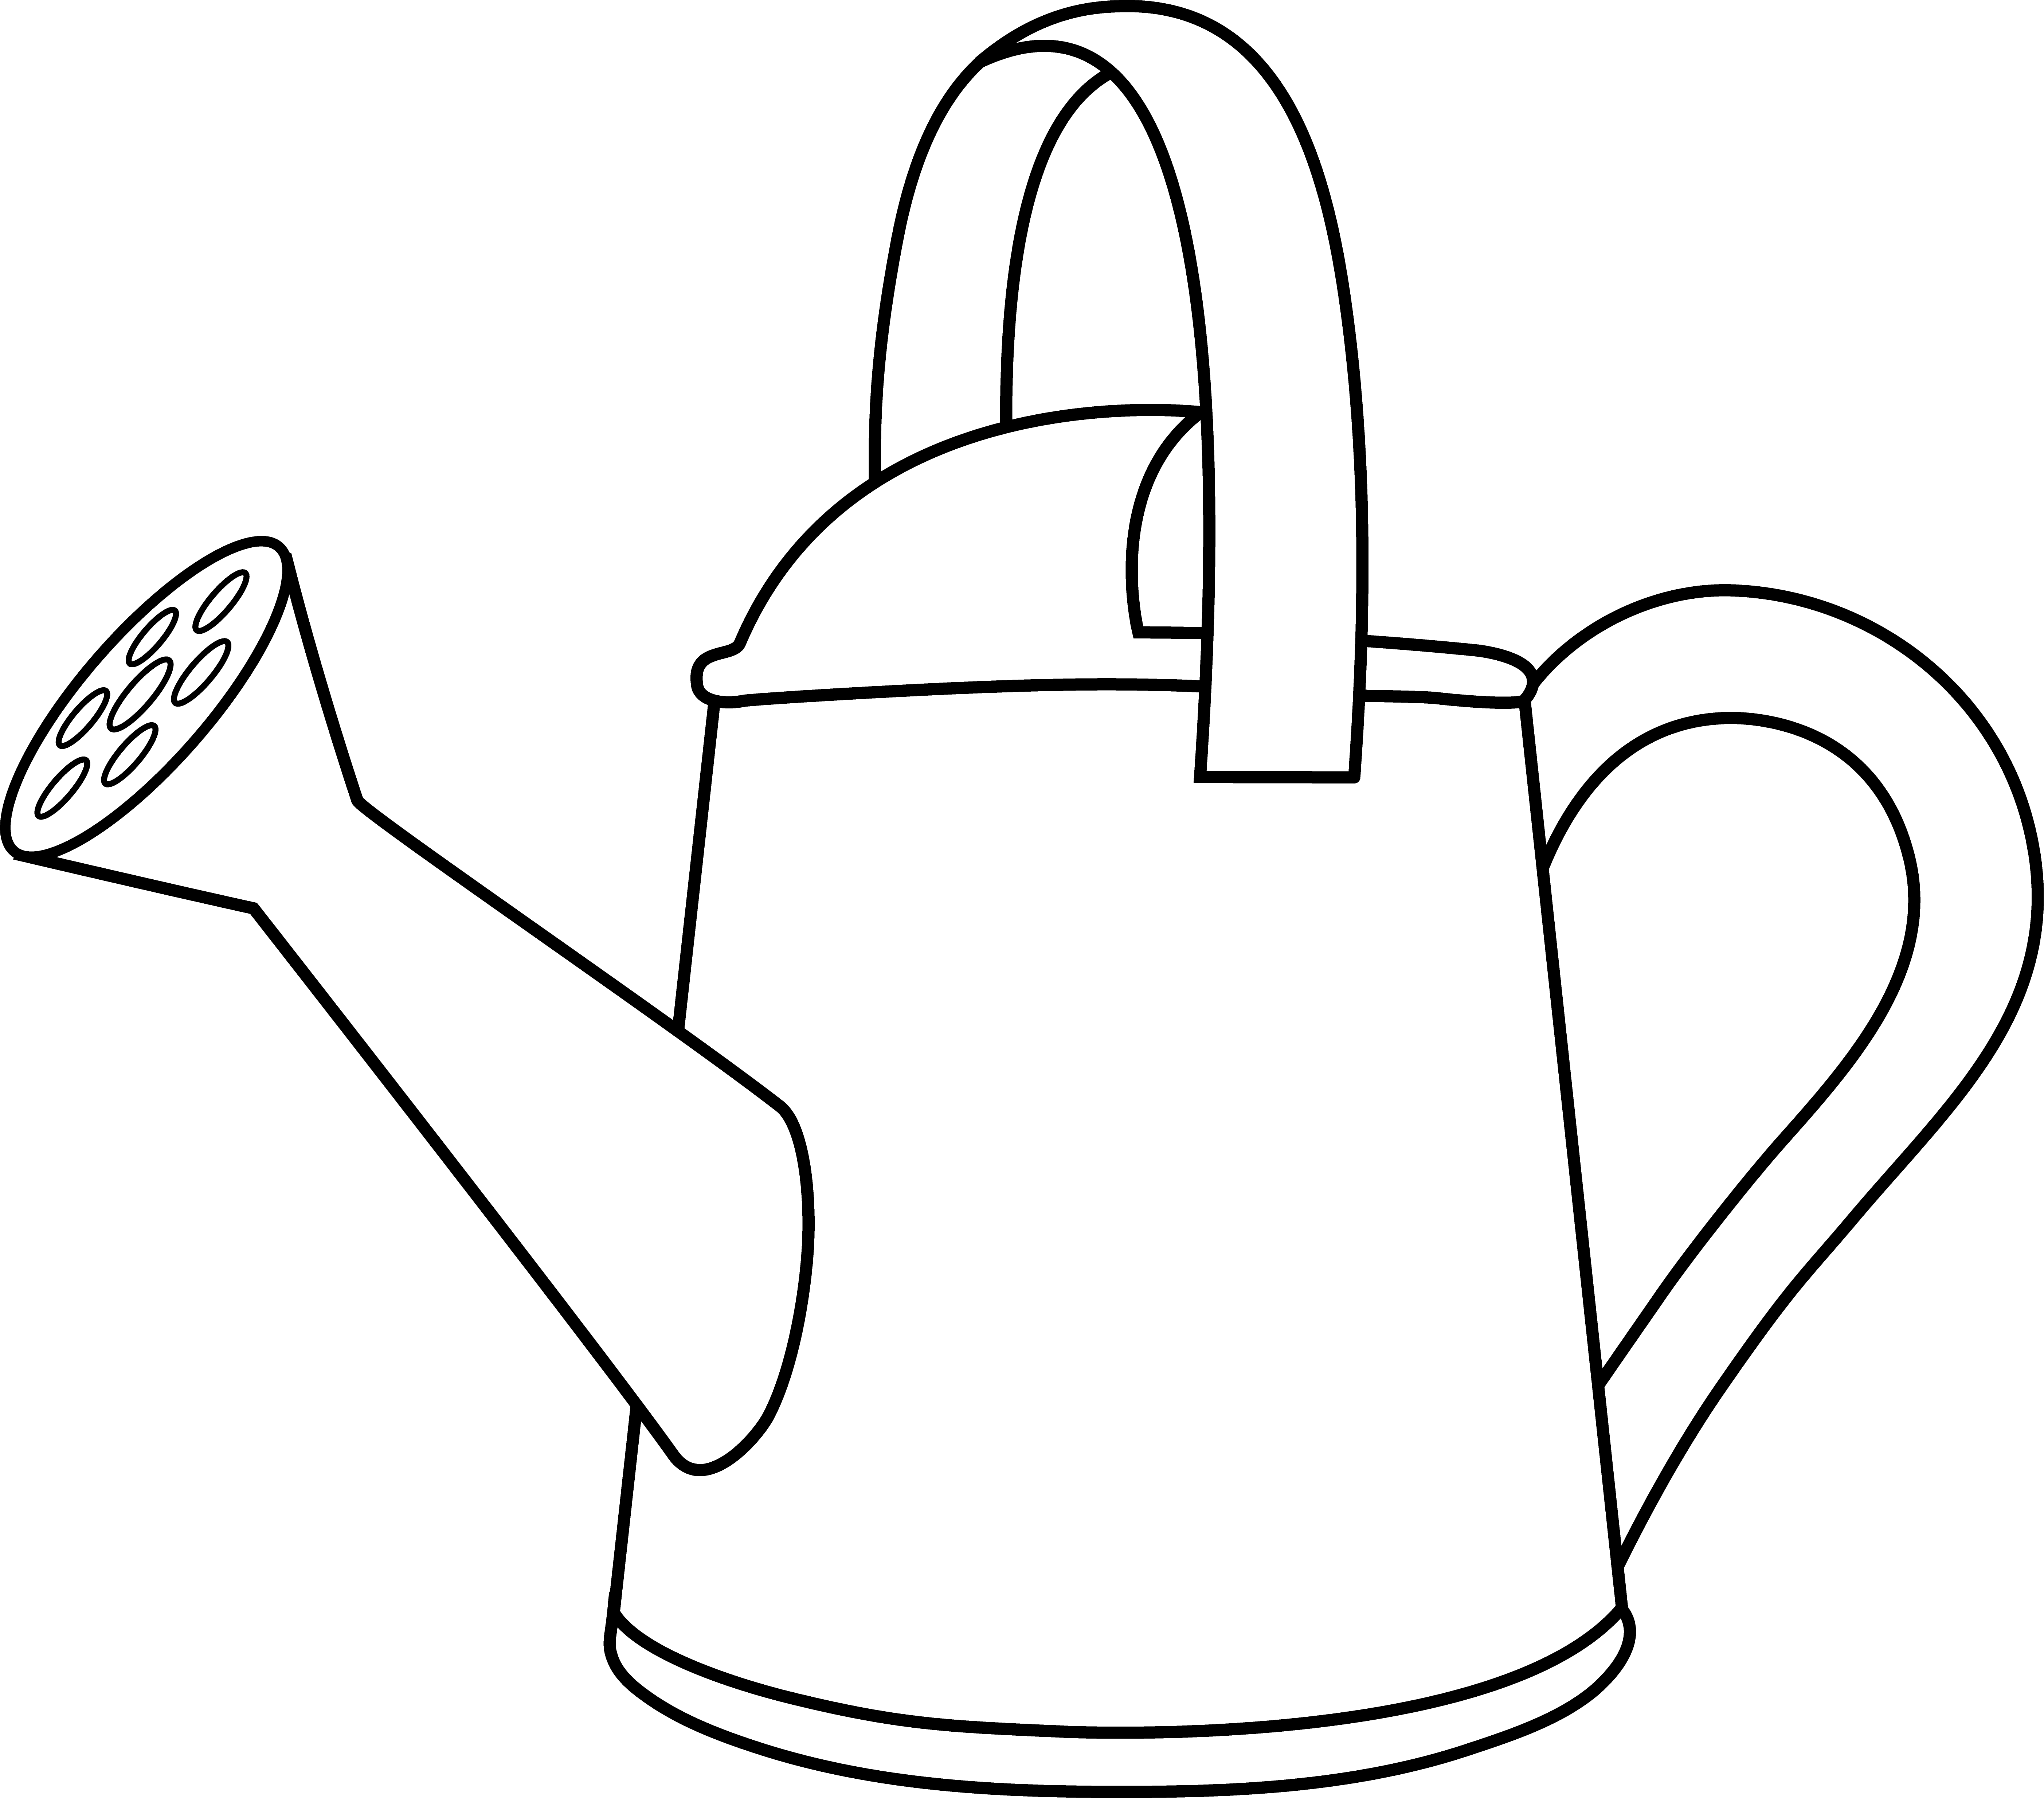 Colorable Watering Can Outline - Free Clip Art  Free clip art